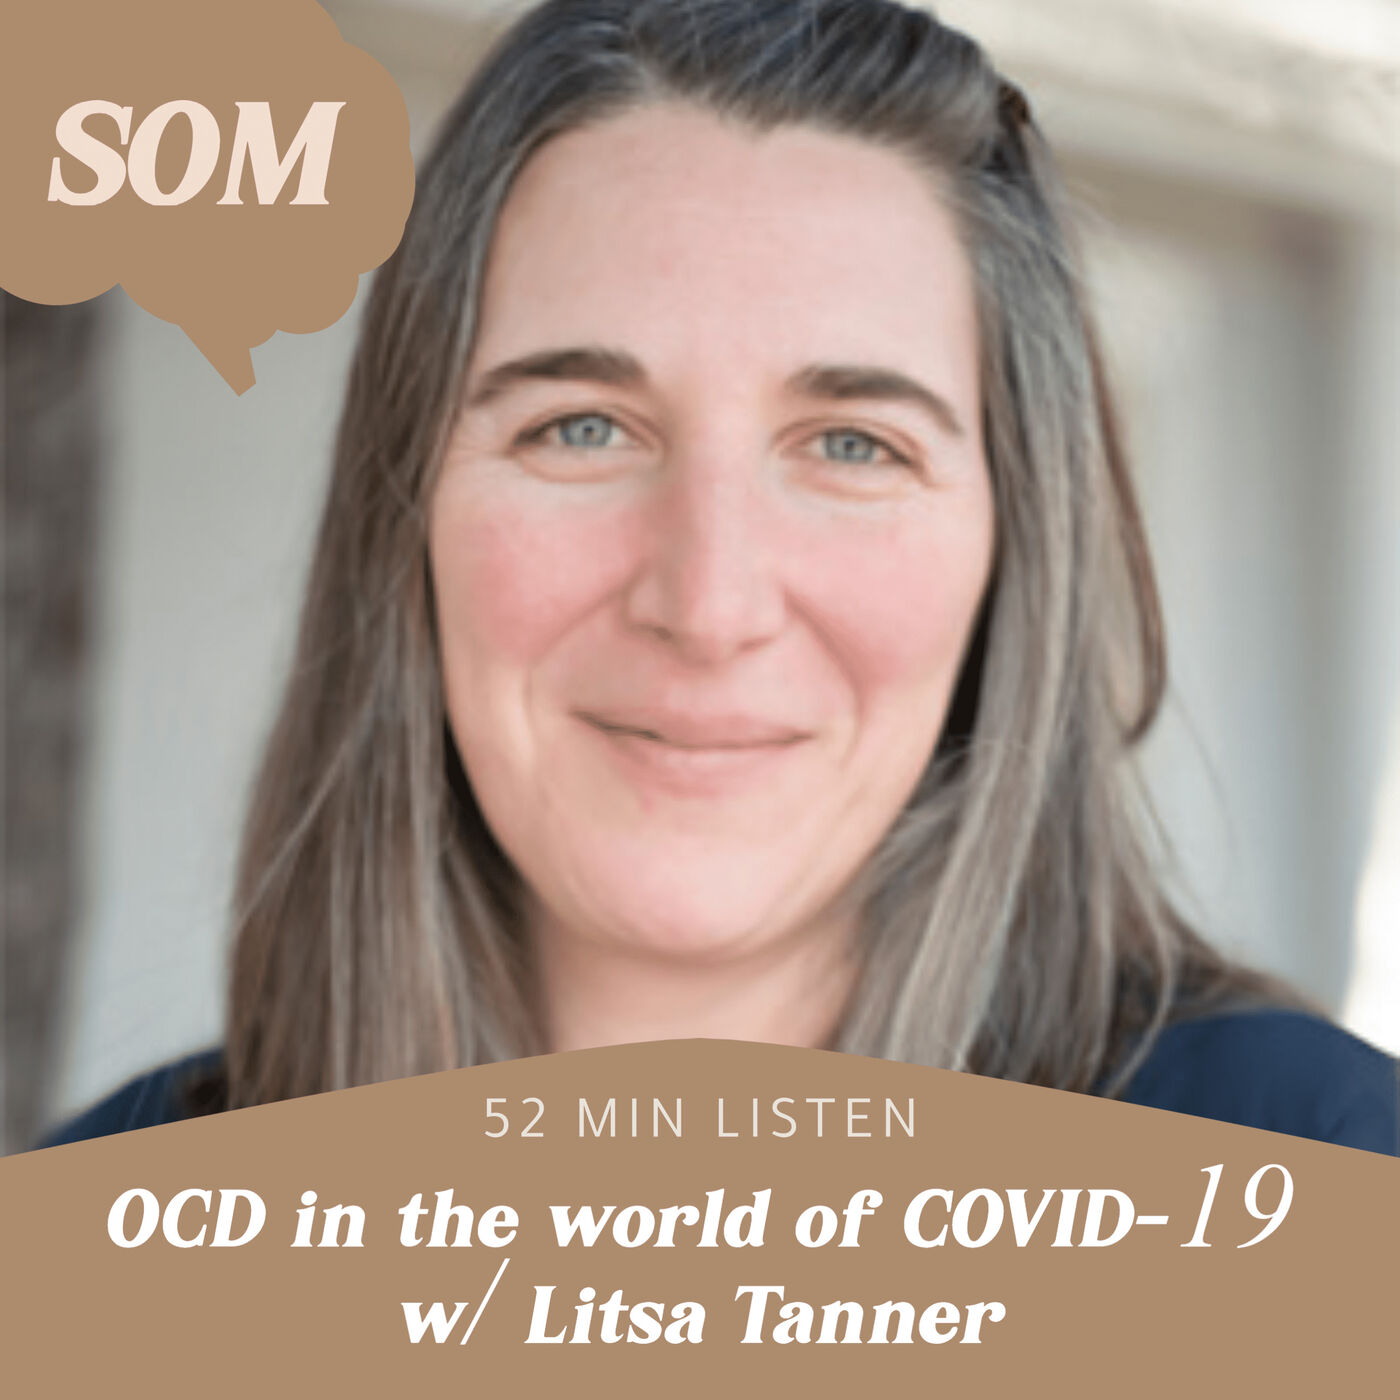 OCD in the world of COVID-19 w/ Litsa Tanner